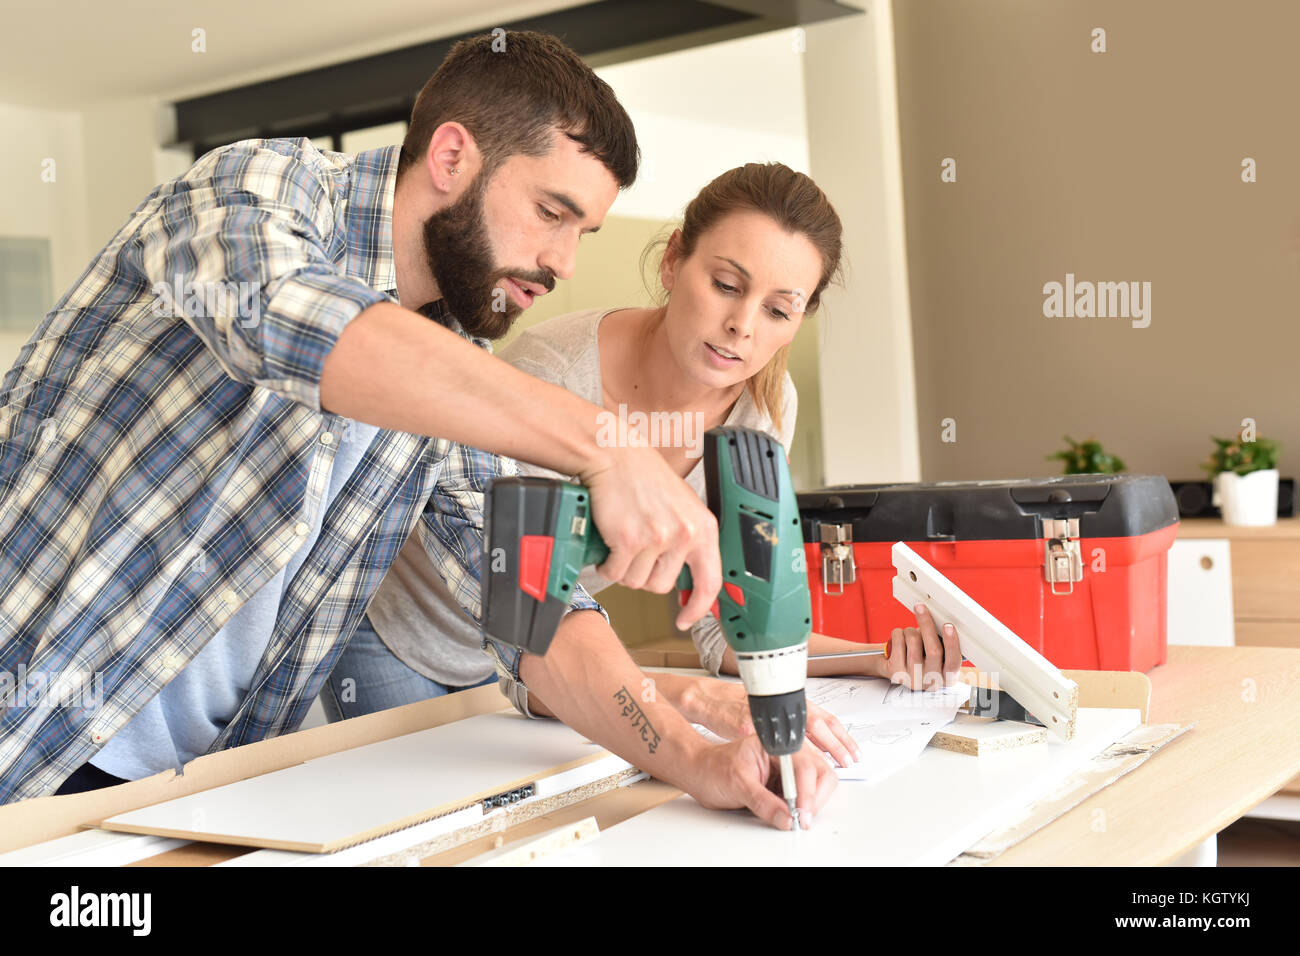 Couple assembling new furniture - Stock Image